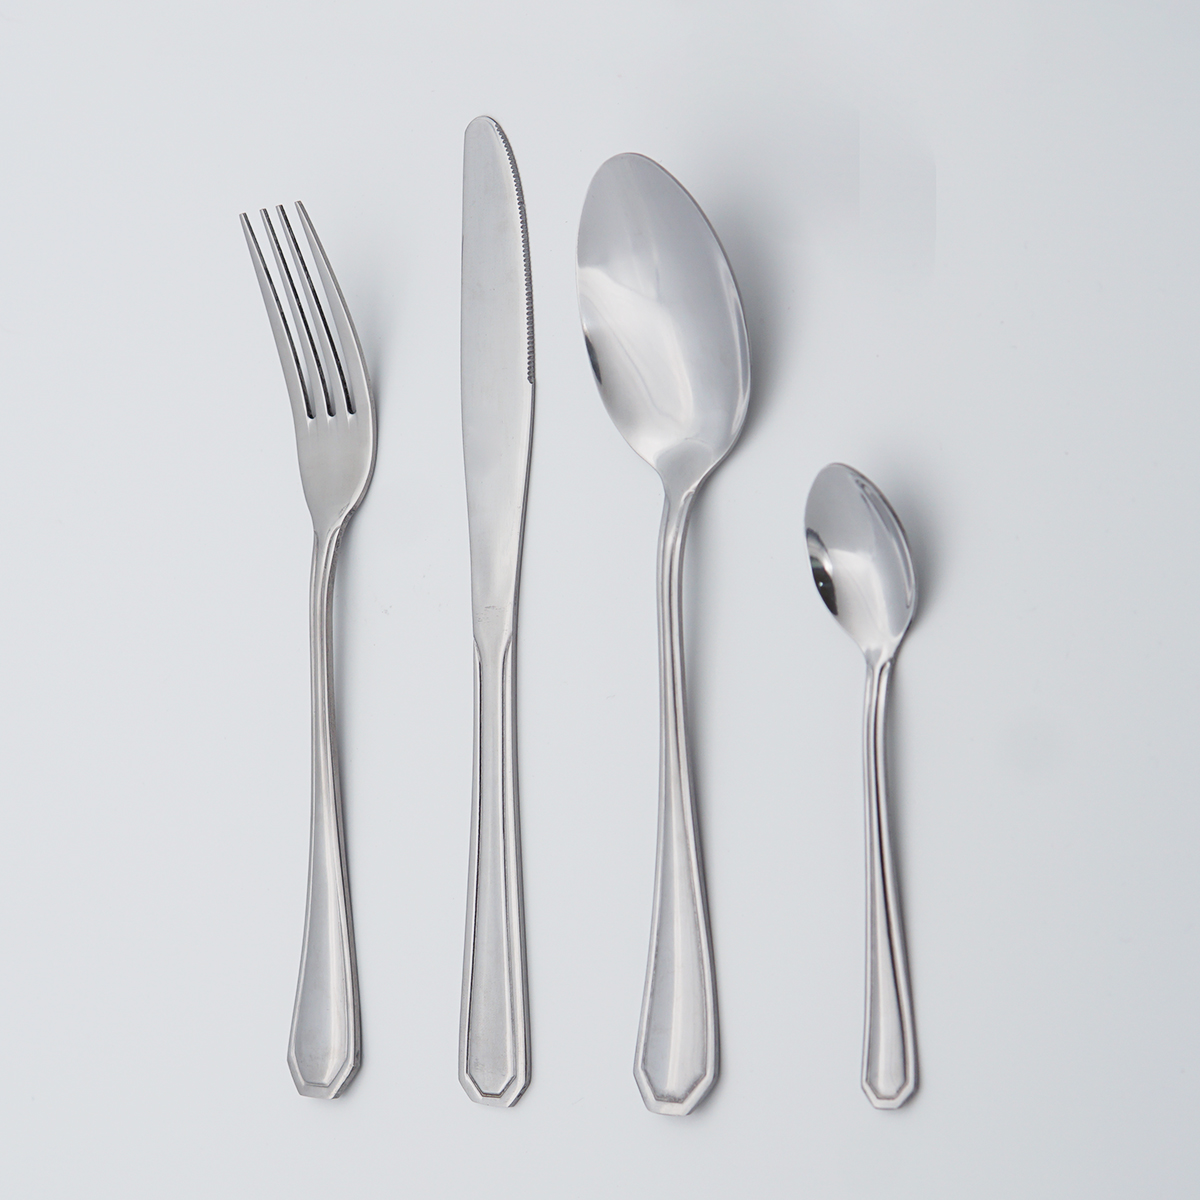 Wholesale Serving Spoon High Mirror Polish Unique Stainless Steel Cutlery Set